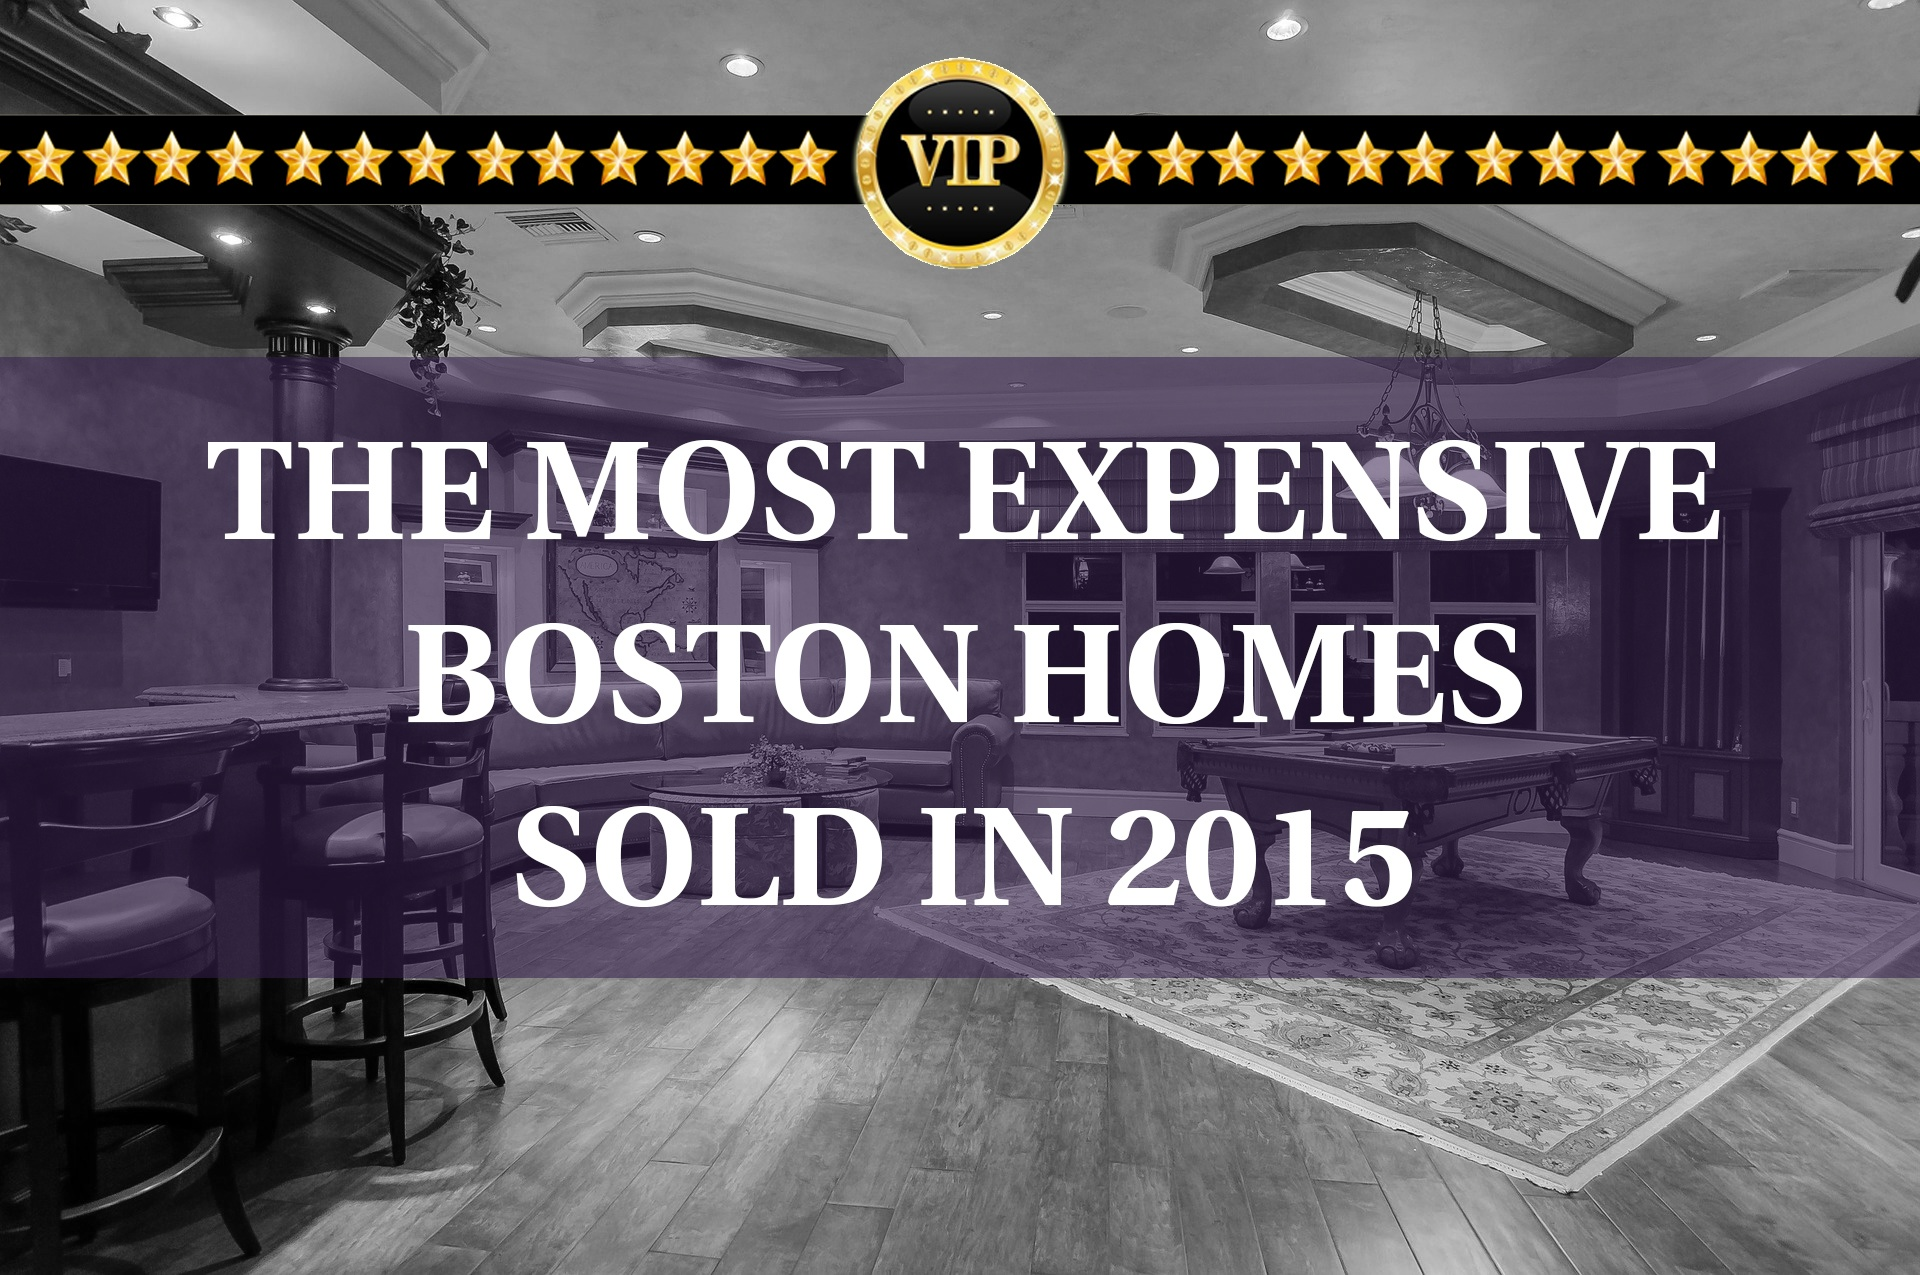 #VIP: Mapping The Most Expensive Boston Homes Sold in 2015